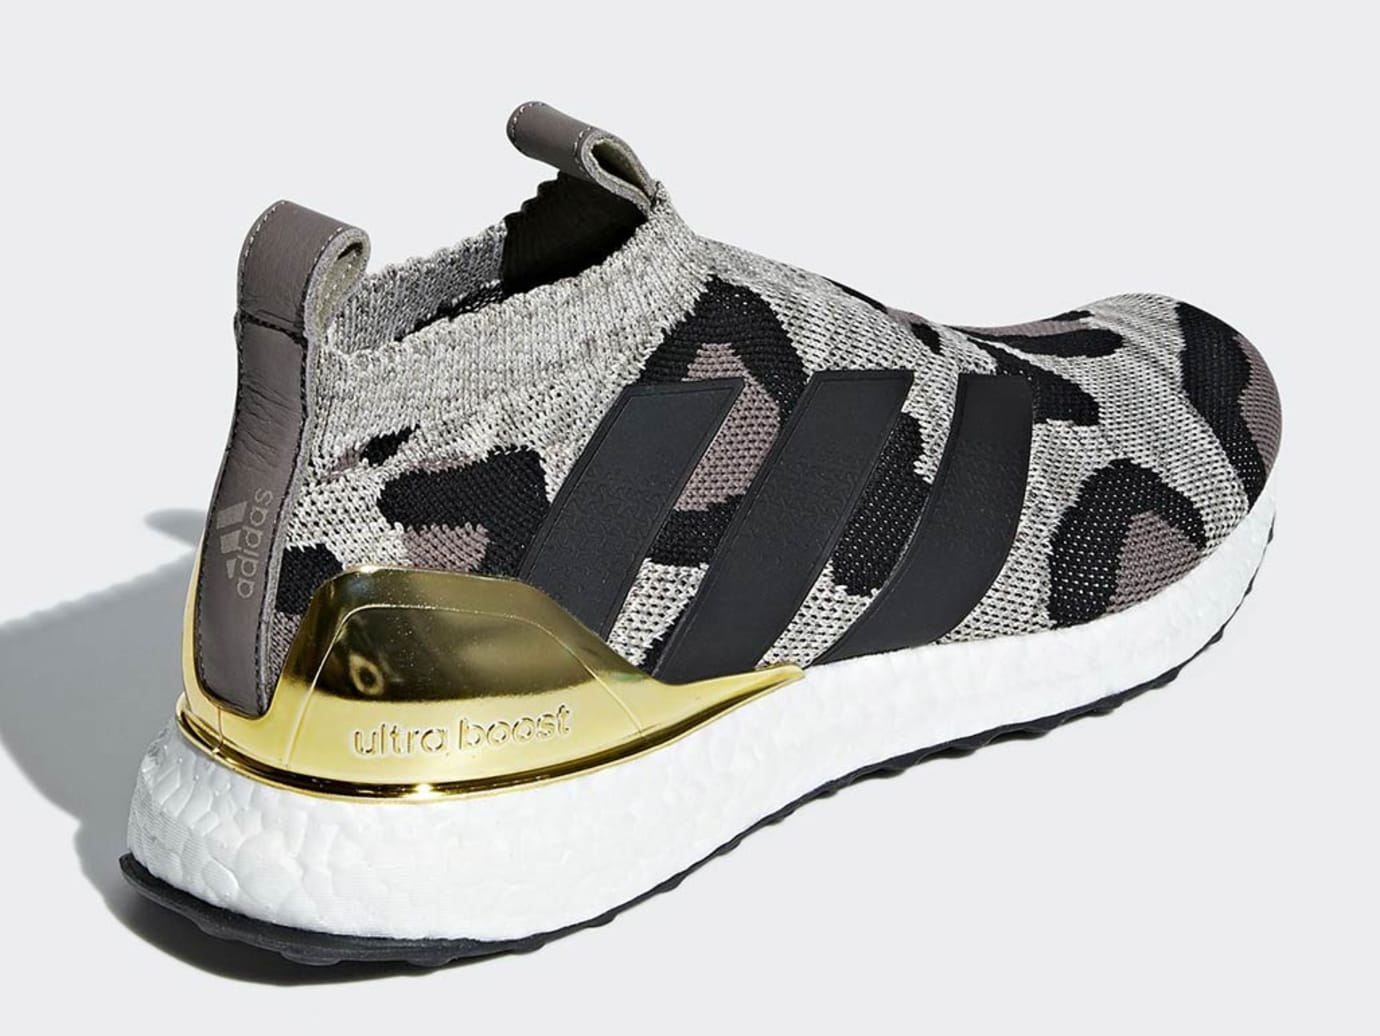 Adidas A 16+ Ultra Boost 'Cheetah' Sole Collector    Adidas A 16+ Ultra Boost 'Cheetah'   title=  f70a7299370ce867c5dd2f4a82c1f4c2     Sole Collector